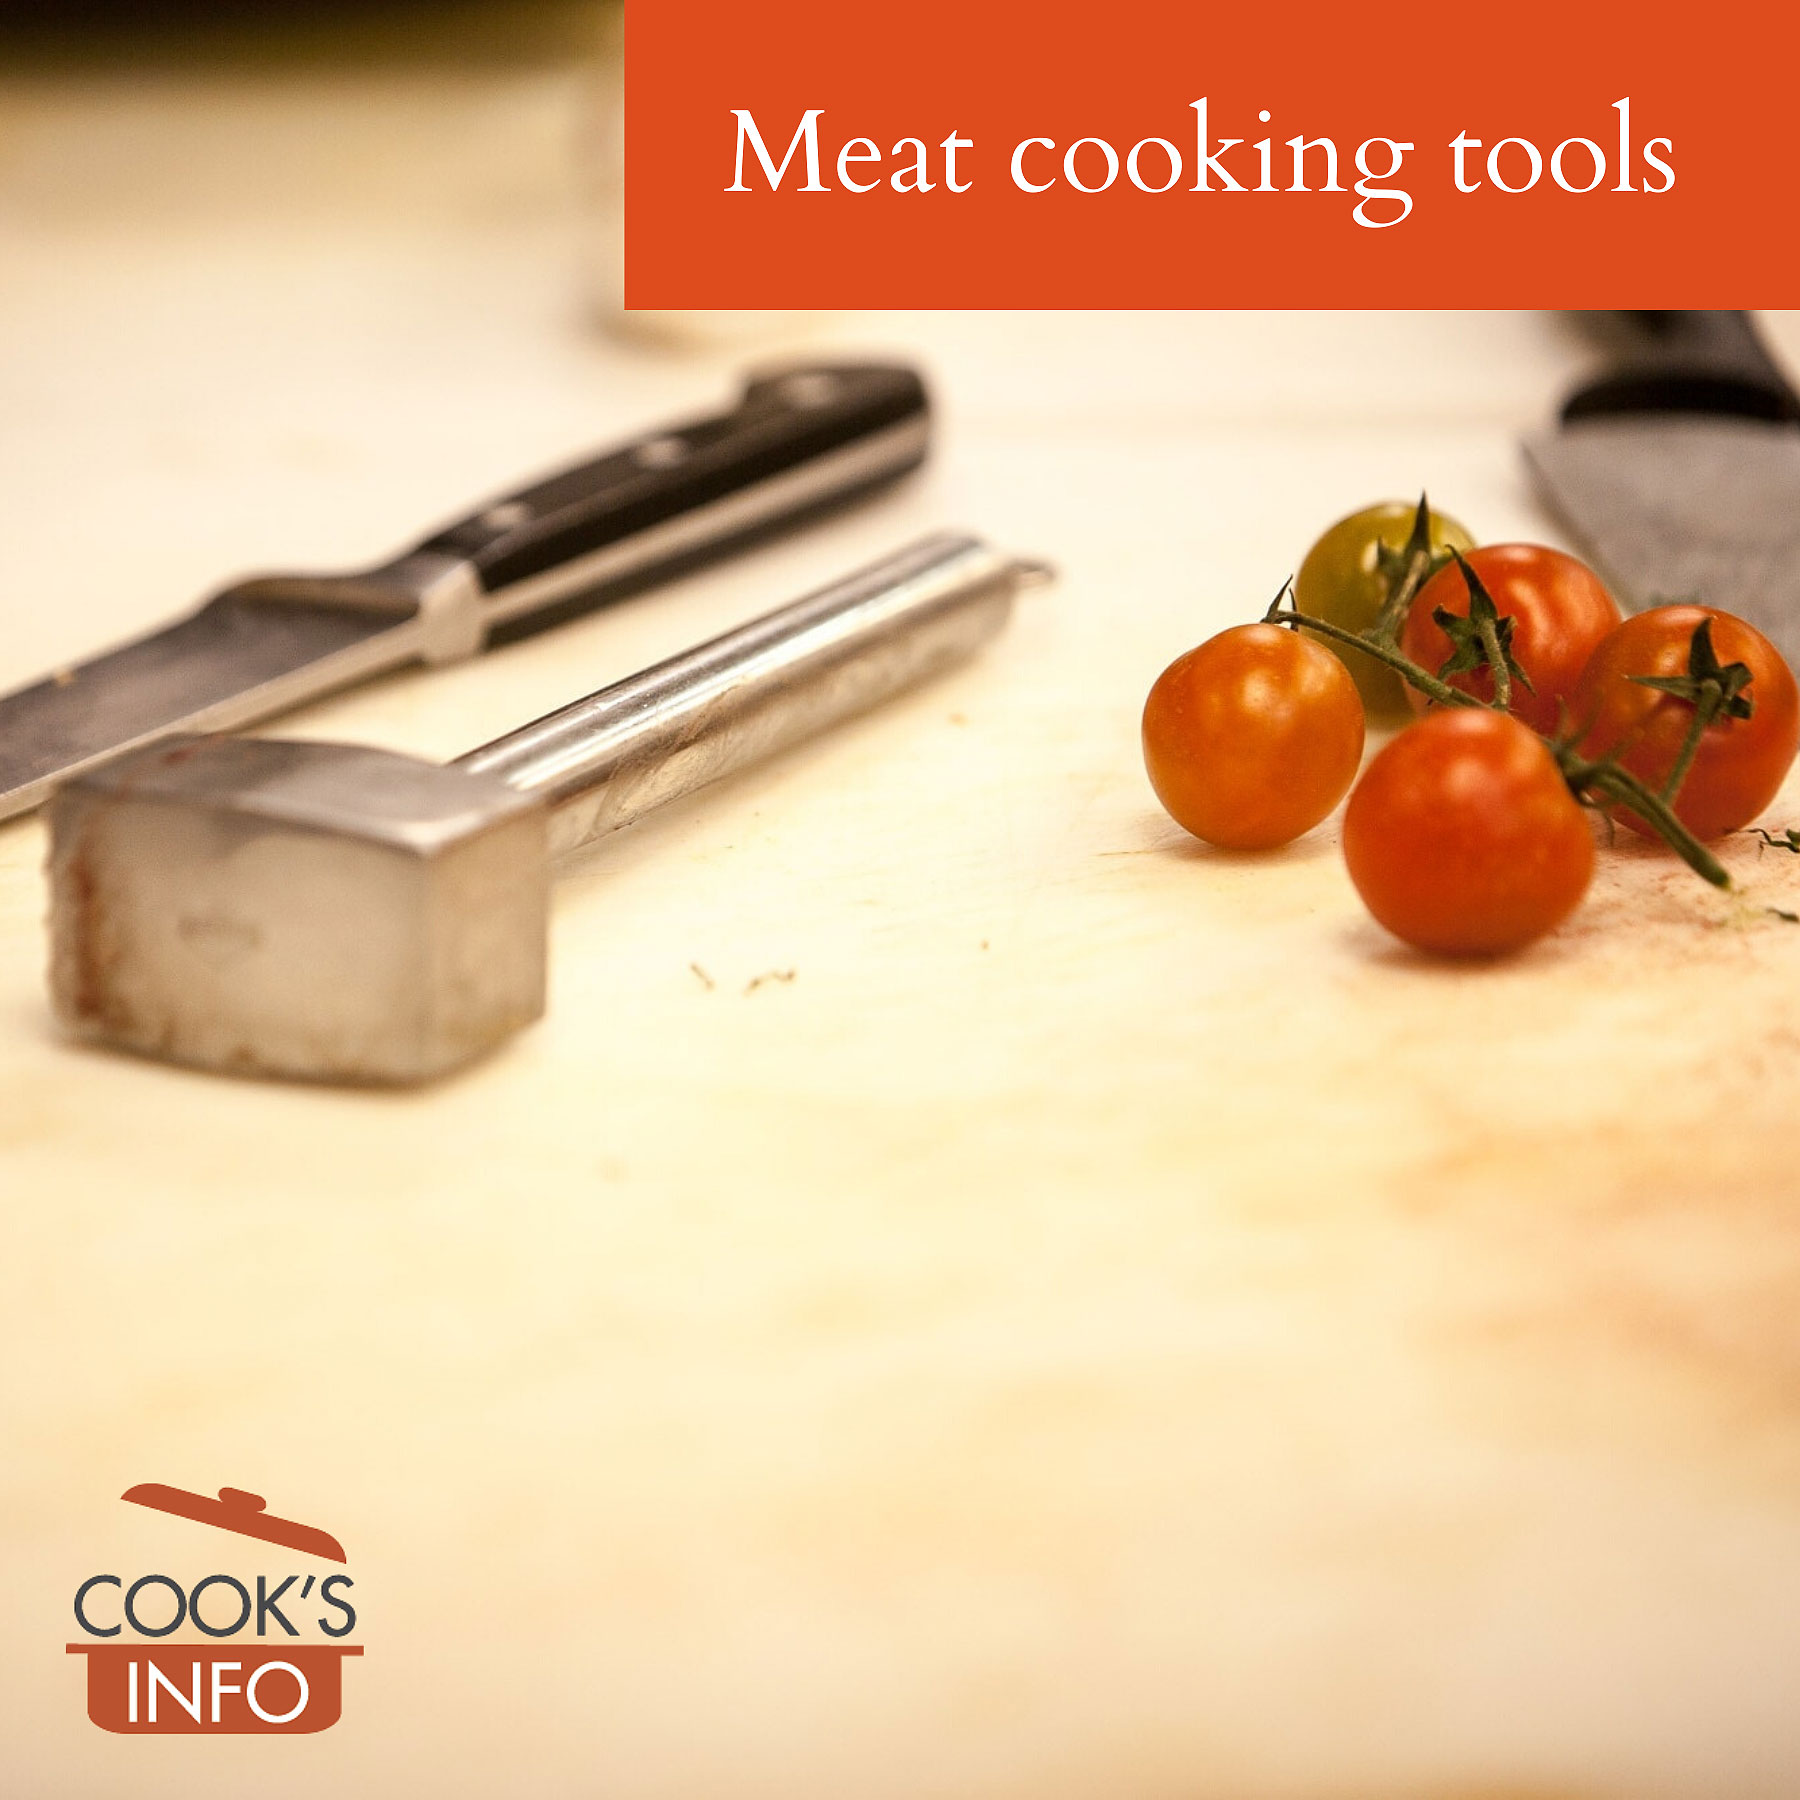 Meat cooking tools